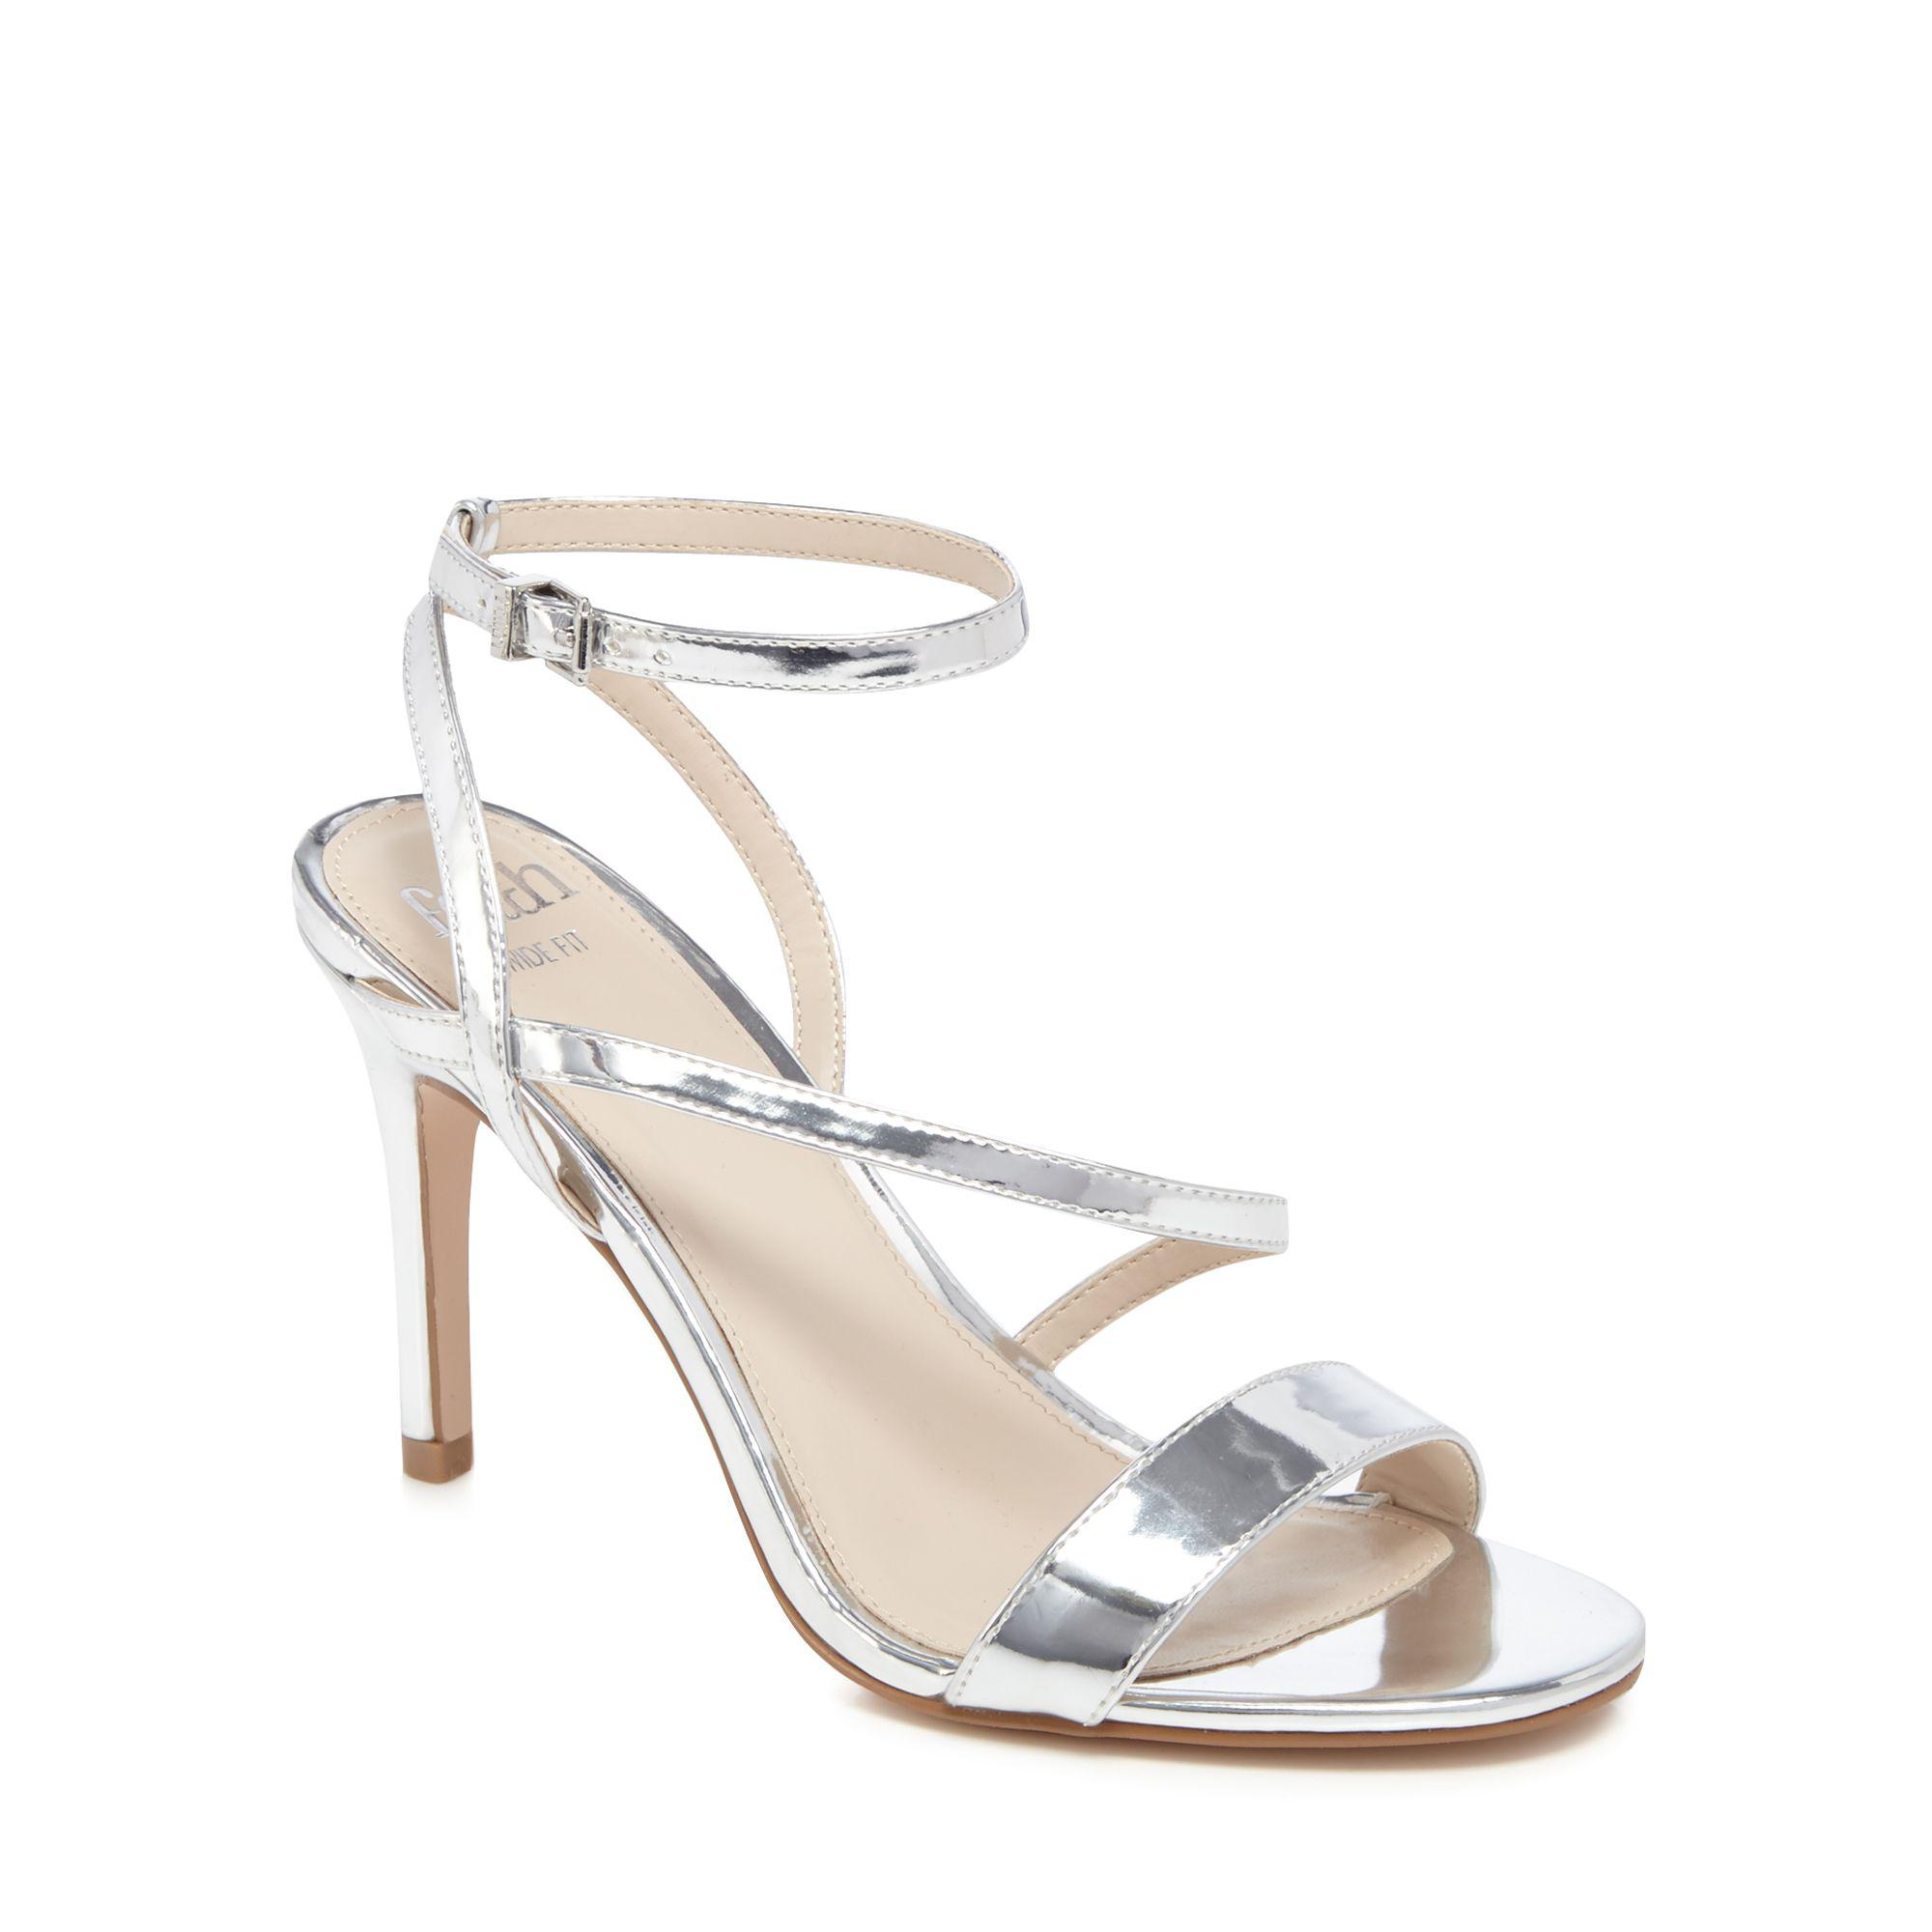 d7af21e1869 Faith - Metallic Silver  delly  High Heel Wide Fit Ankle Strap Sandals -  Lyst. View fullscreen